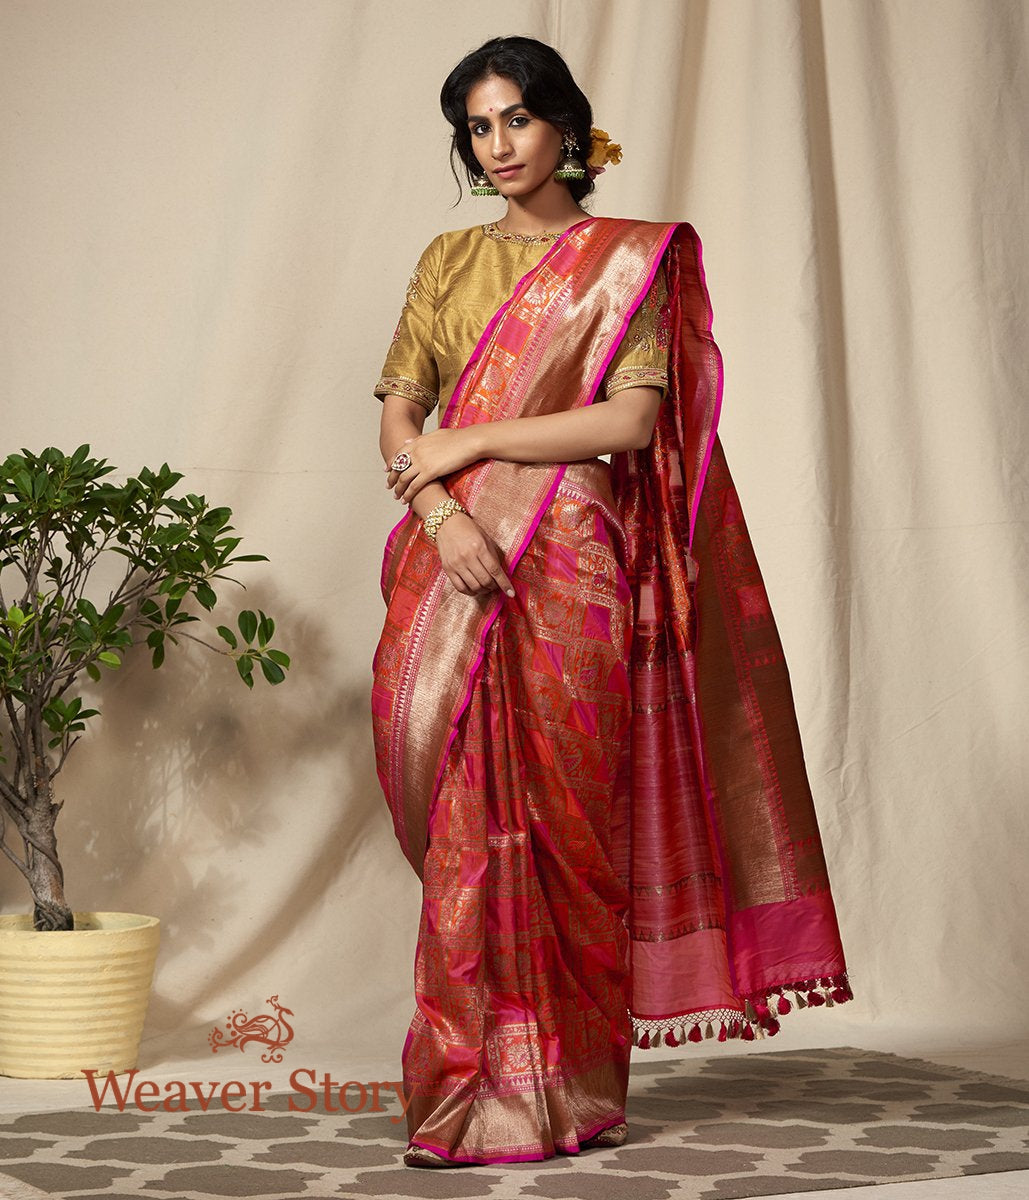 Handwoven Pink and Orange Antique Zari Checks Banarasi Patola Saree